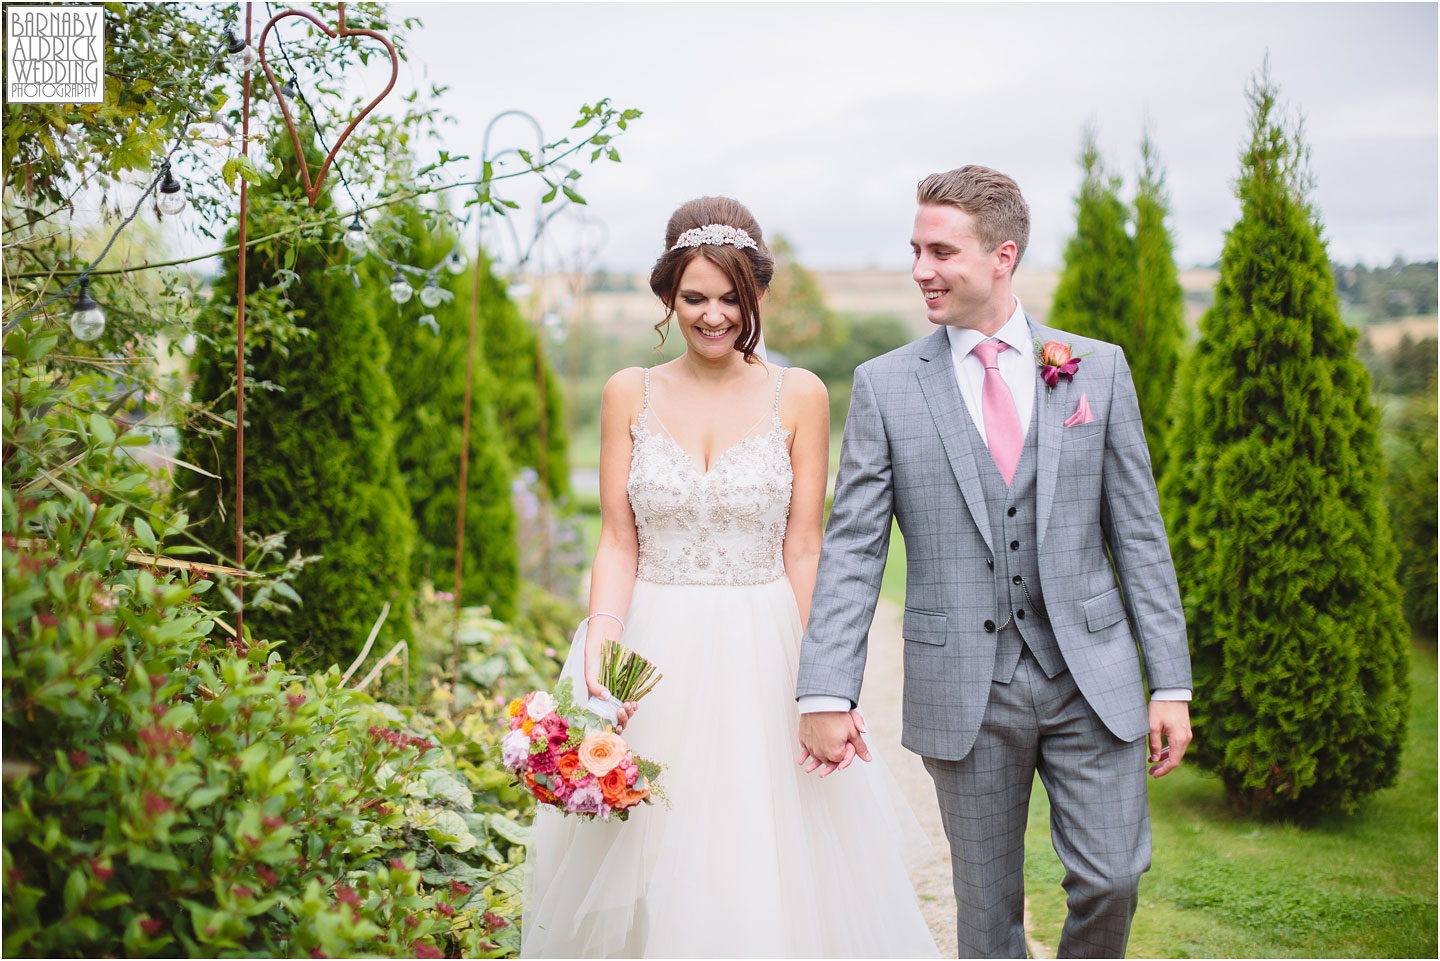 Relaxed Wedding portraits at Yorkshire Wedding Barn in Gilling West near Richmond